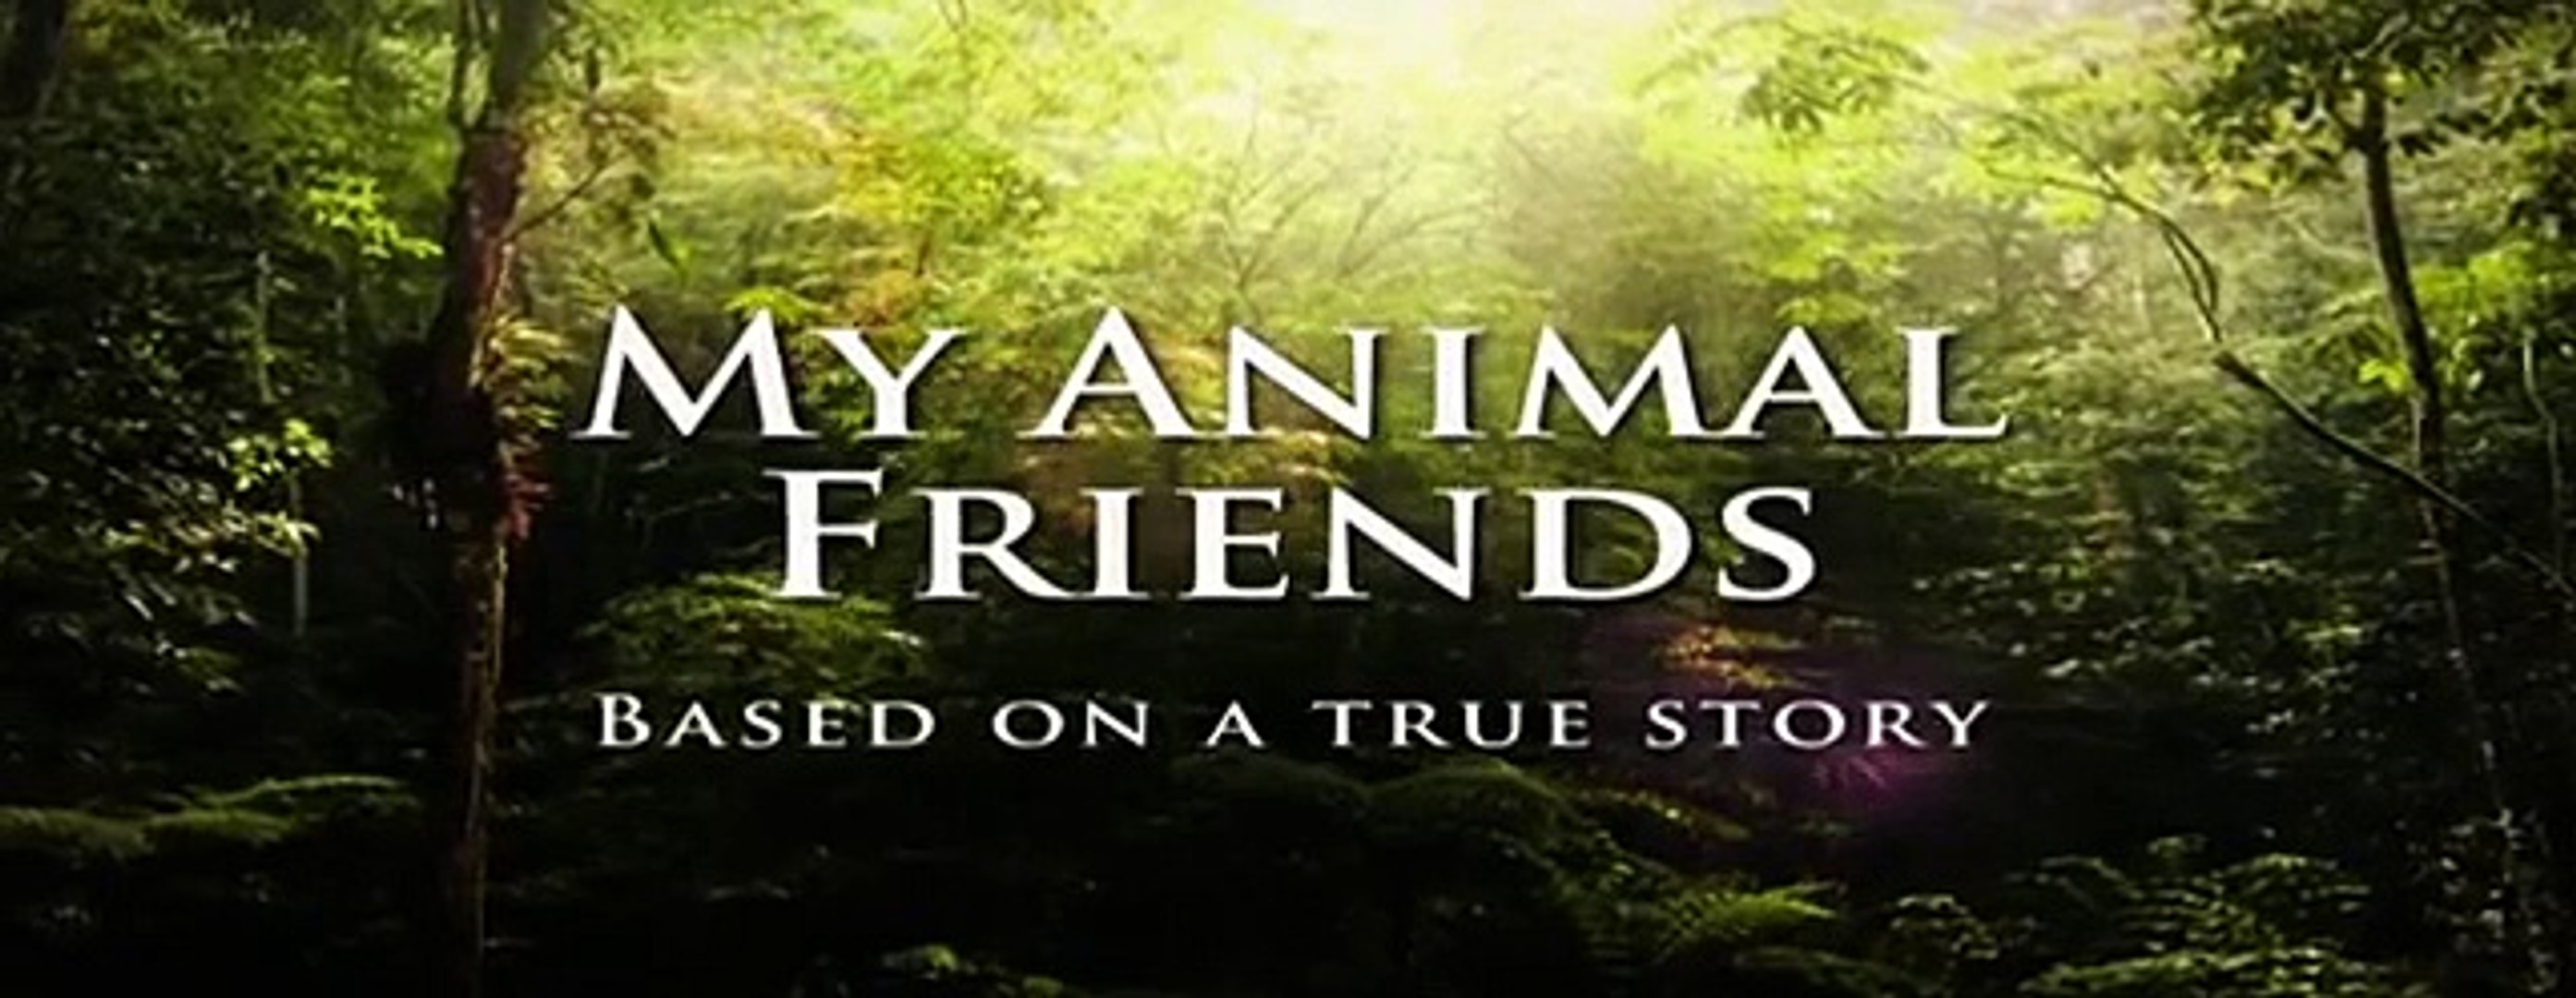 Brumby - My animal friends - Animals Documentary -Kids educational Videos